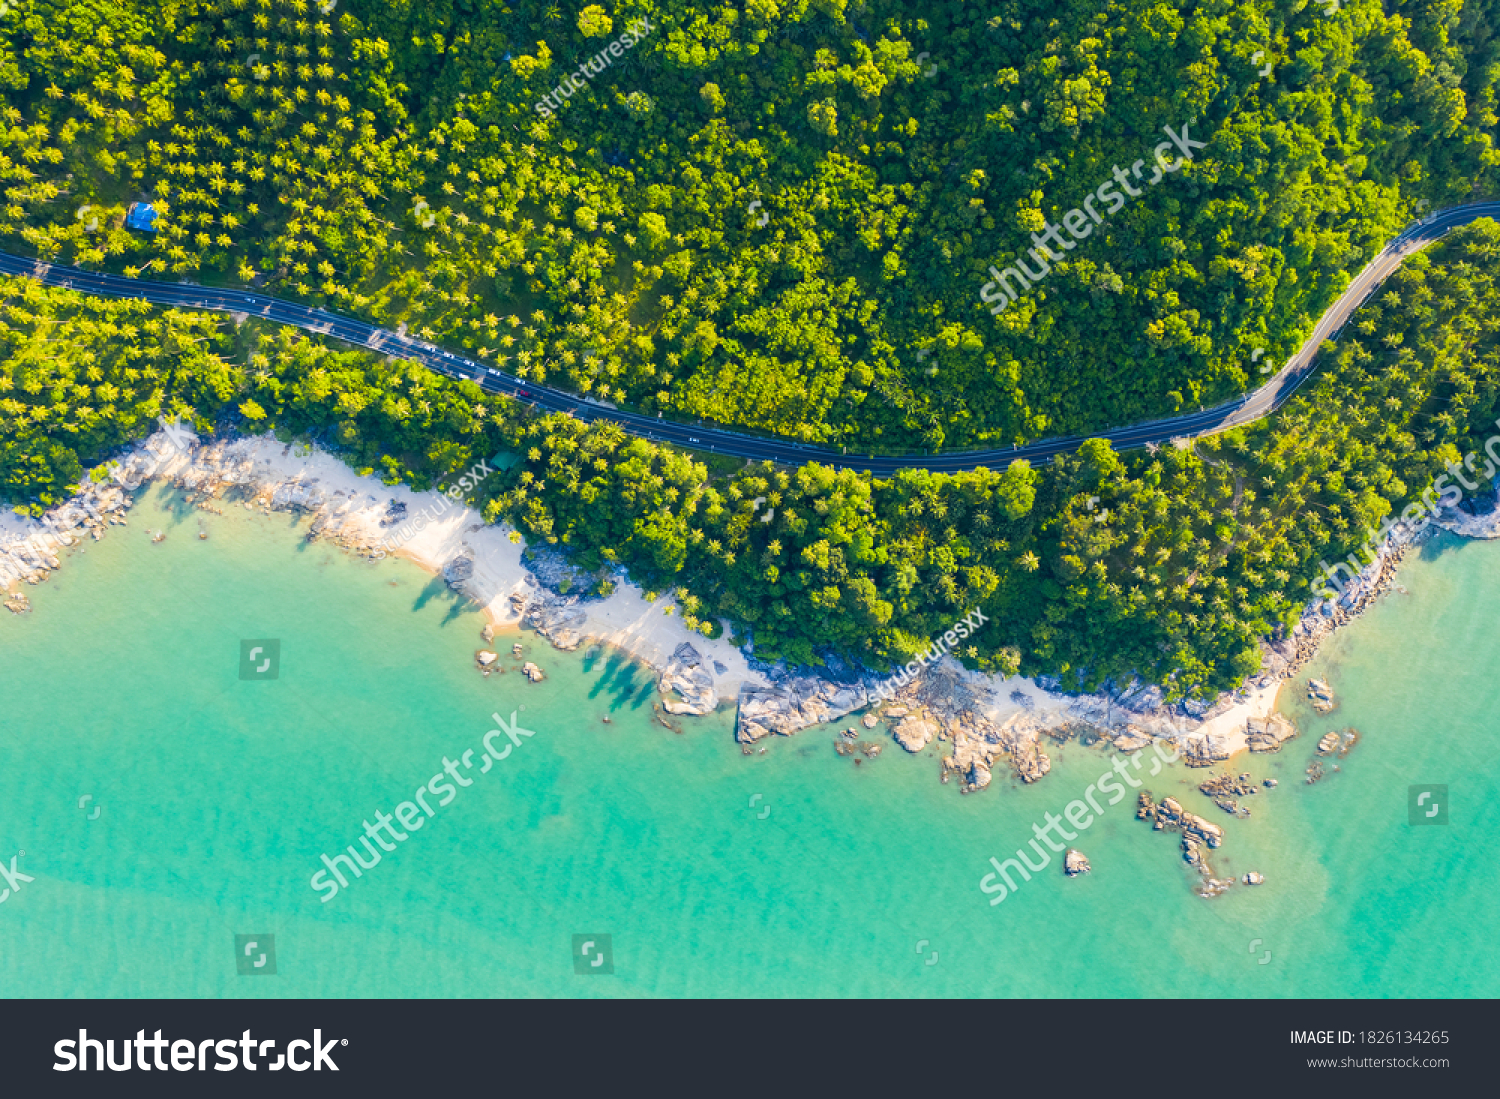 High angle view of  road pass through coconut tree forest and beautiful coastline in Khanom, Nakhon si thammarat, Thailand #1826134265